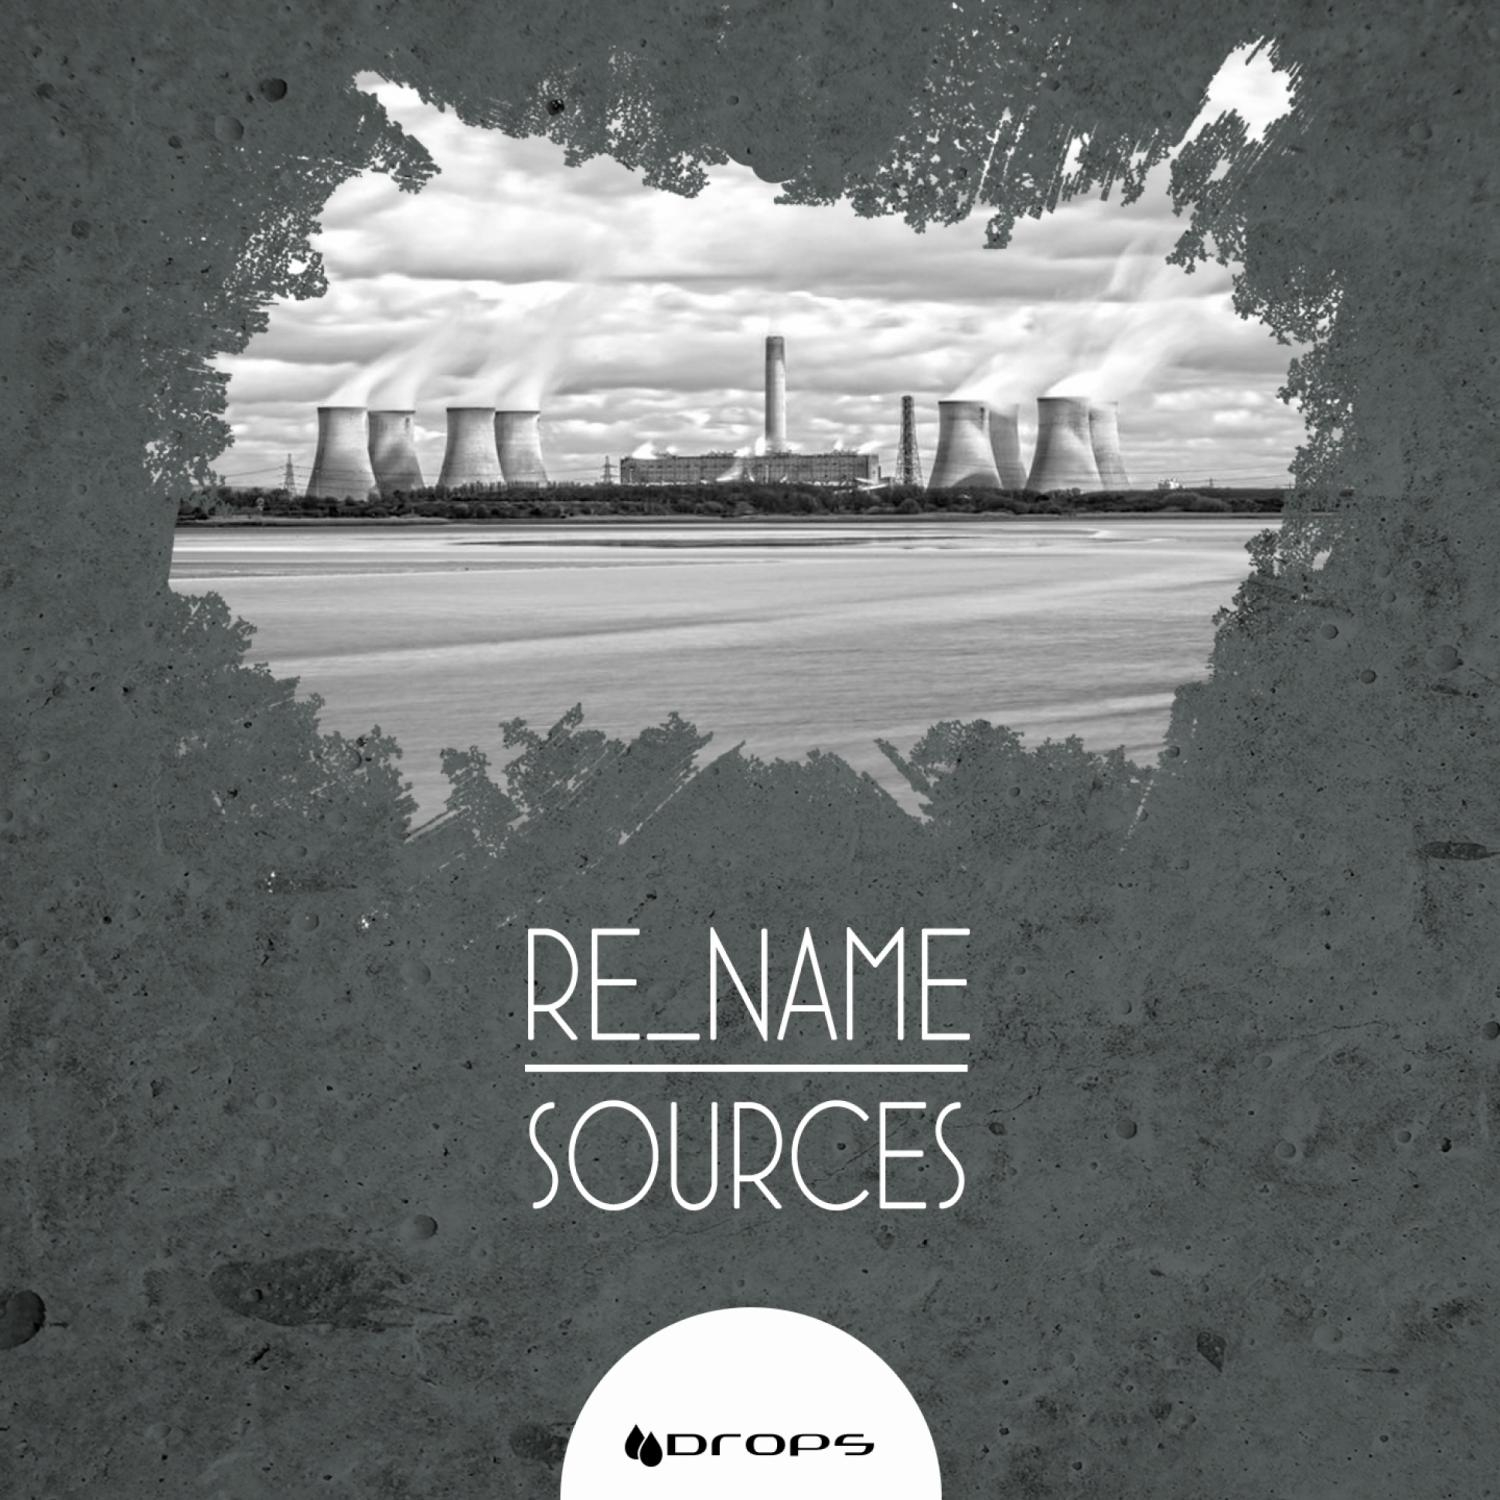 Re_Name - Mysterious Sources (Original Mix)